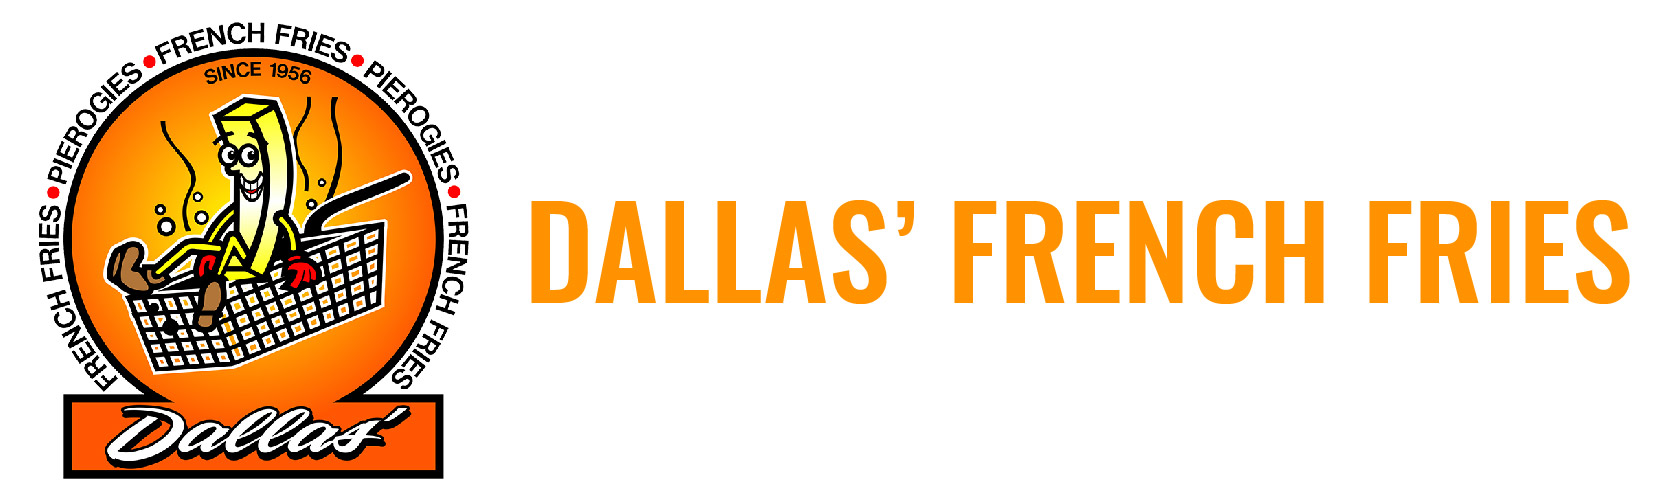 Dallas French Fries